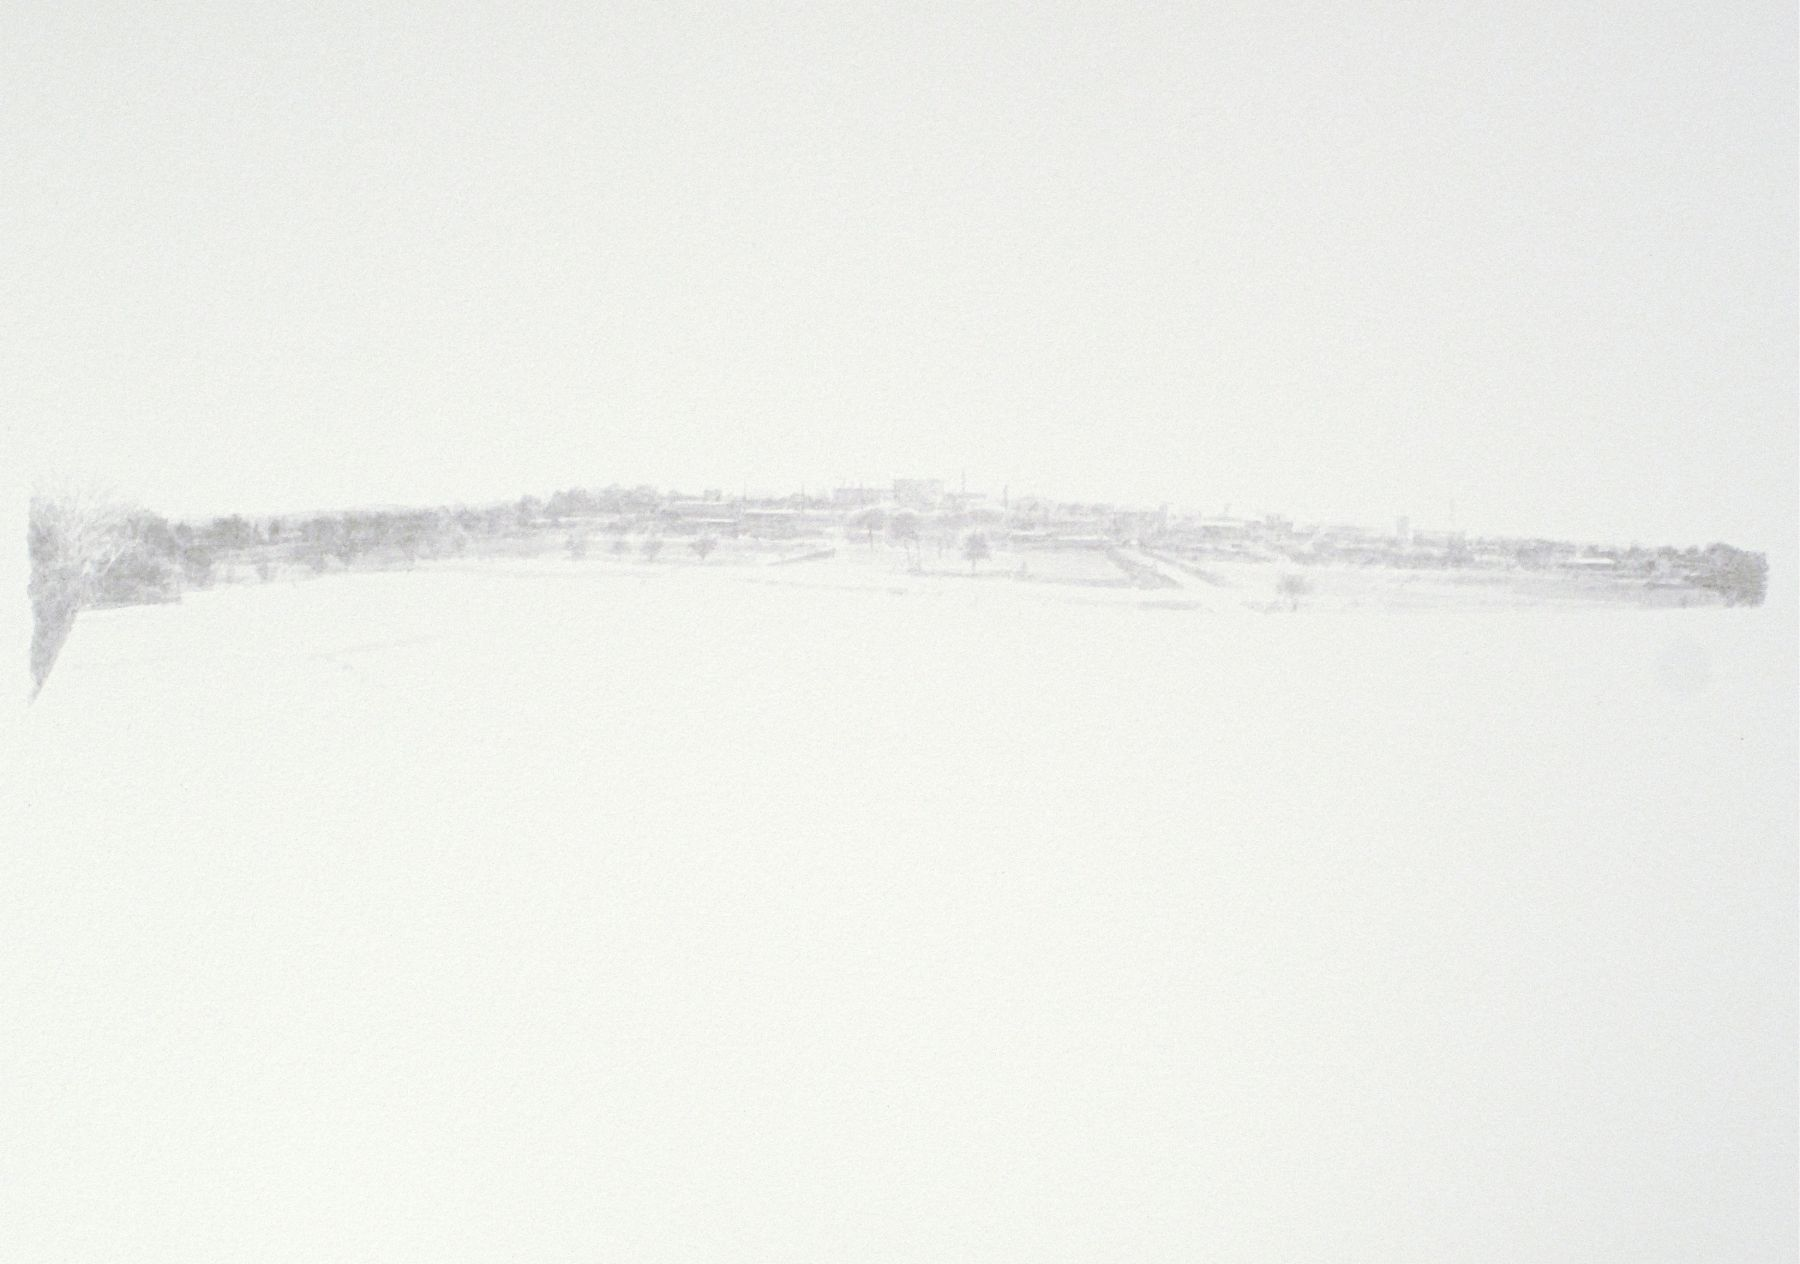 Robert Bauer, Untitled Landscape, 2011, brush and ink on paper, 11 x 15 inches